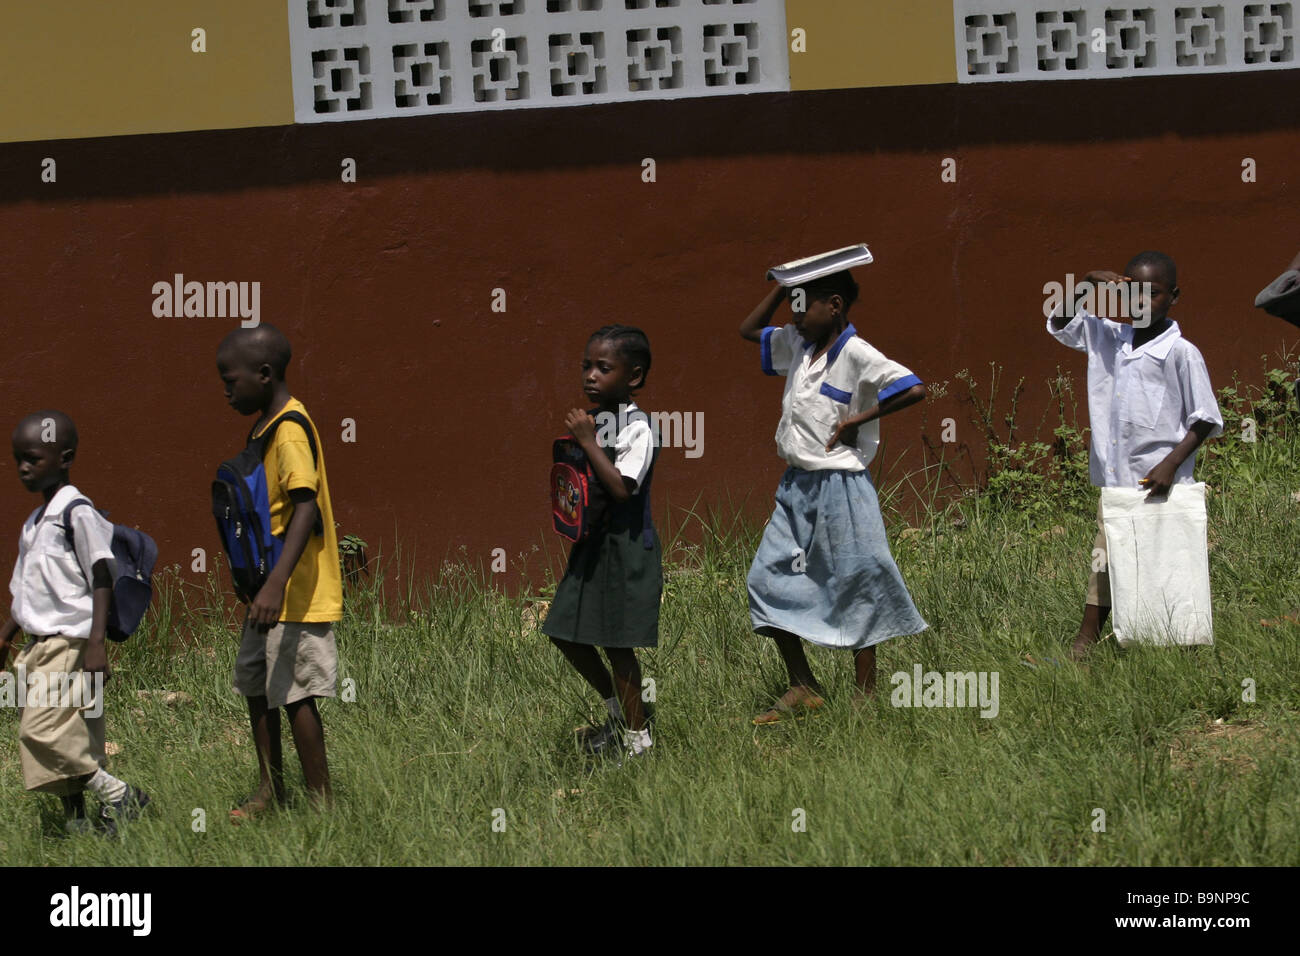 A group of young school children head towards a classroom at a school in northern Liberia - Stock Image